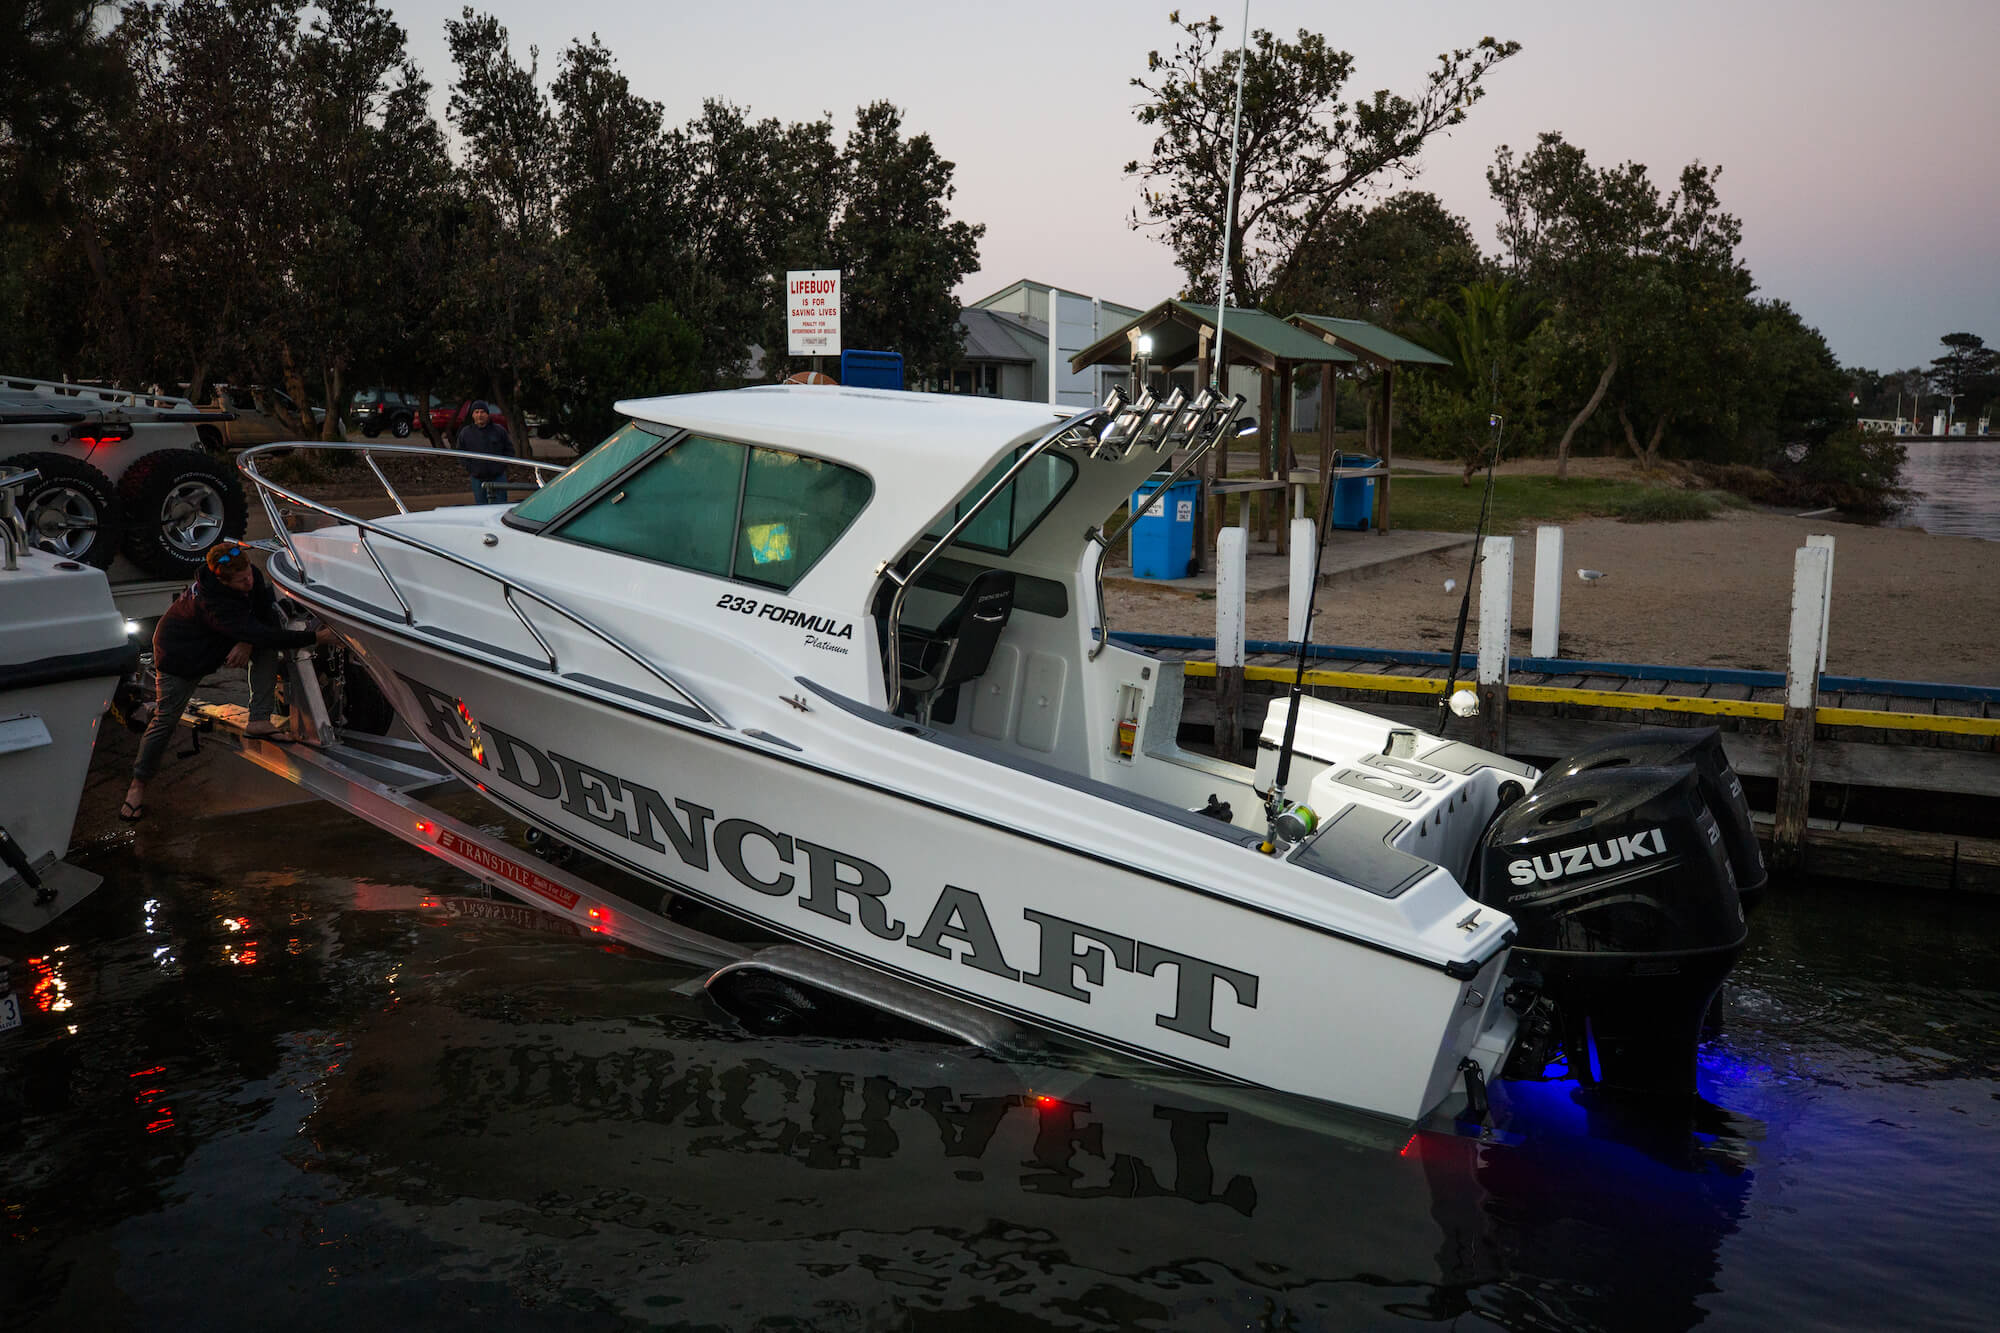 Edencraft 233 Formula Platinum being launched from Transtyle trailer